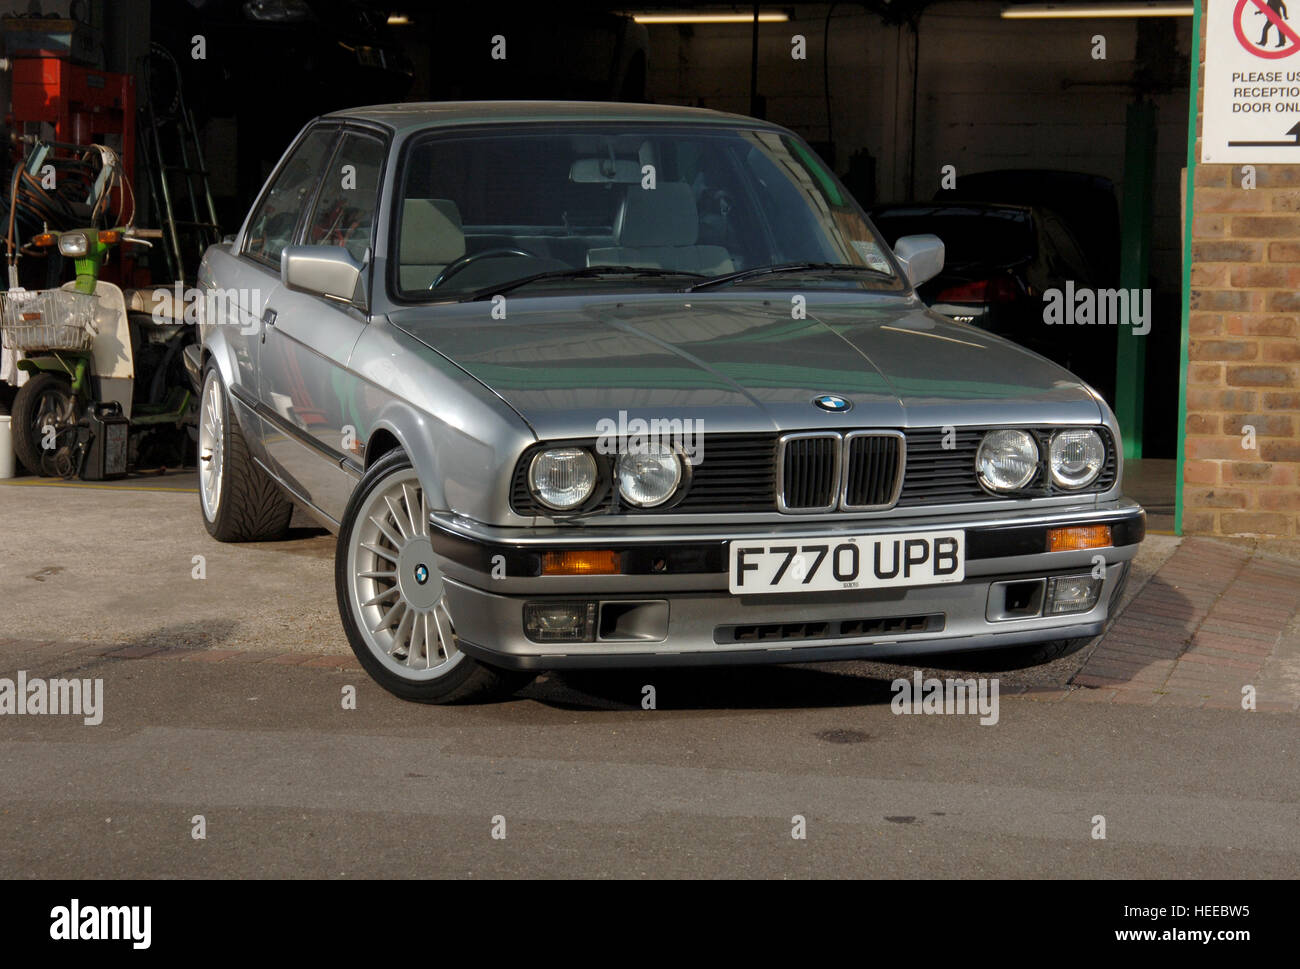 1988 bmw 325i coupe e30 shape 6 cylinder engine 3 series stock photo royalty free image. Black Bedroom Furniture Sets. Home Design Ideas